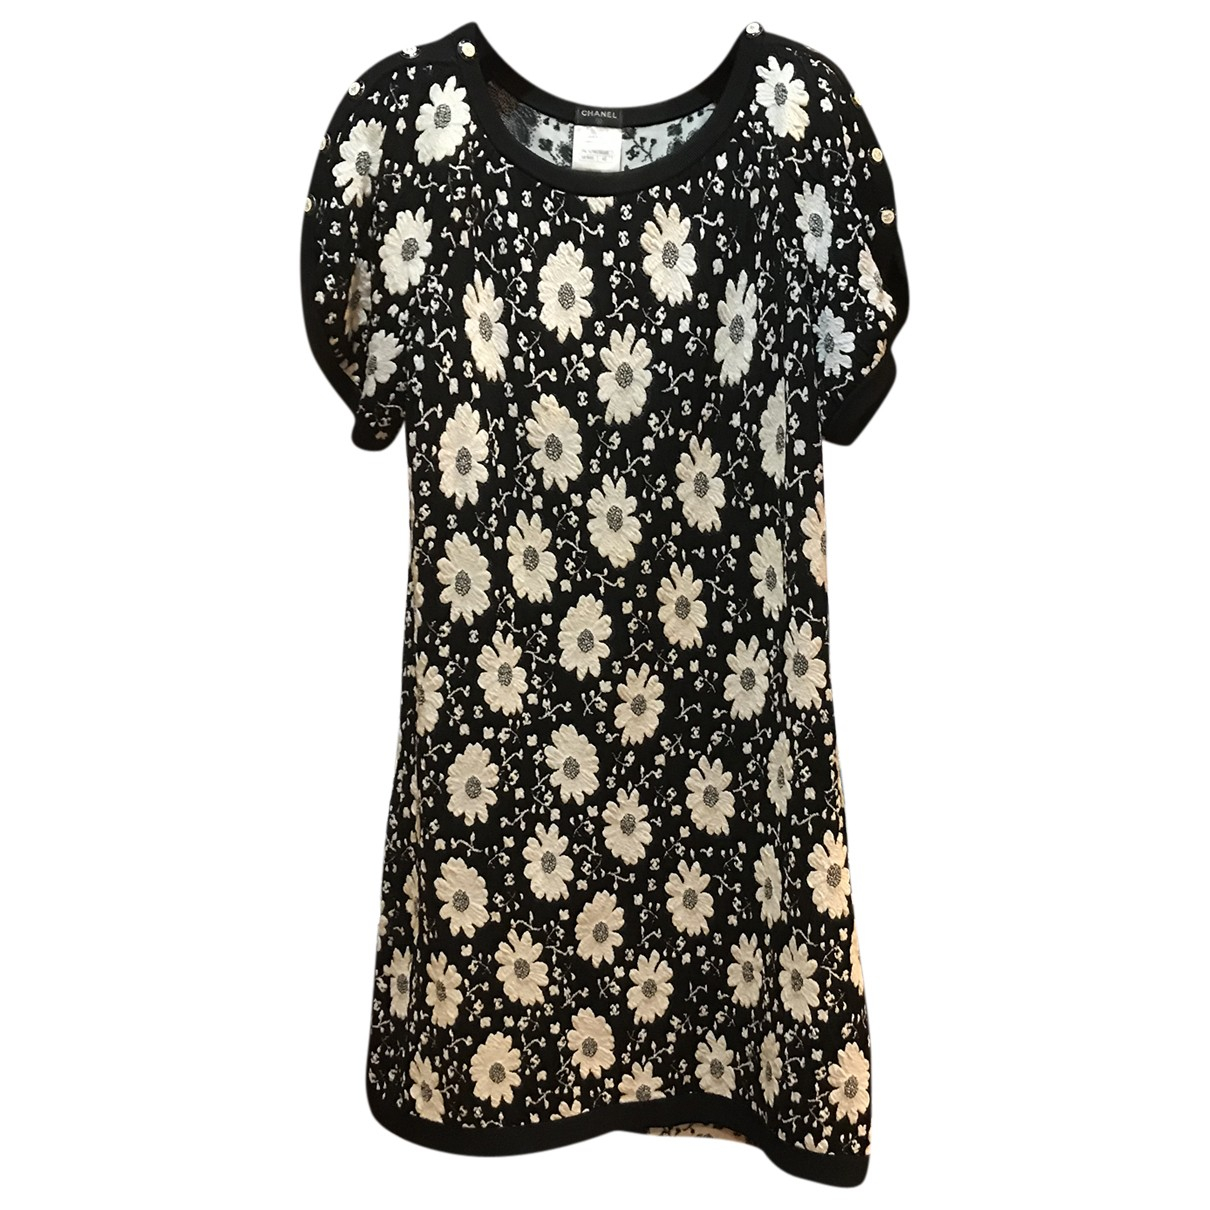 Chanel \N Black Cotton dress for Women 42 FR